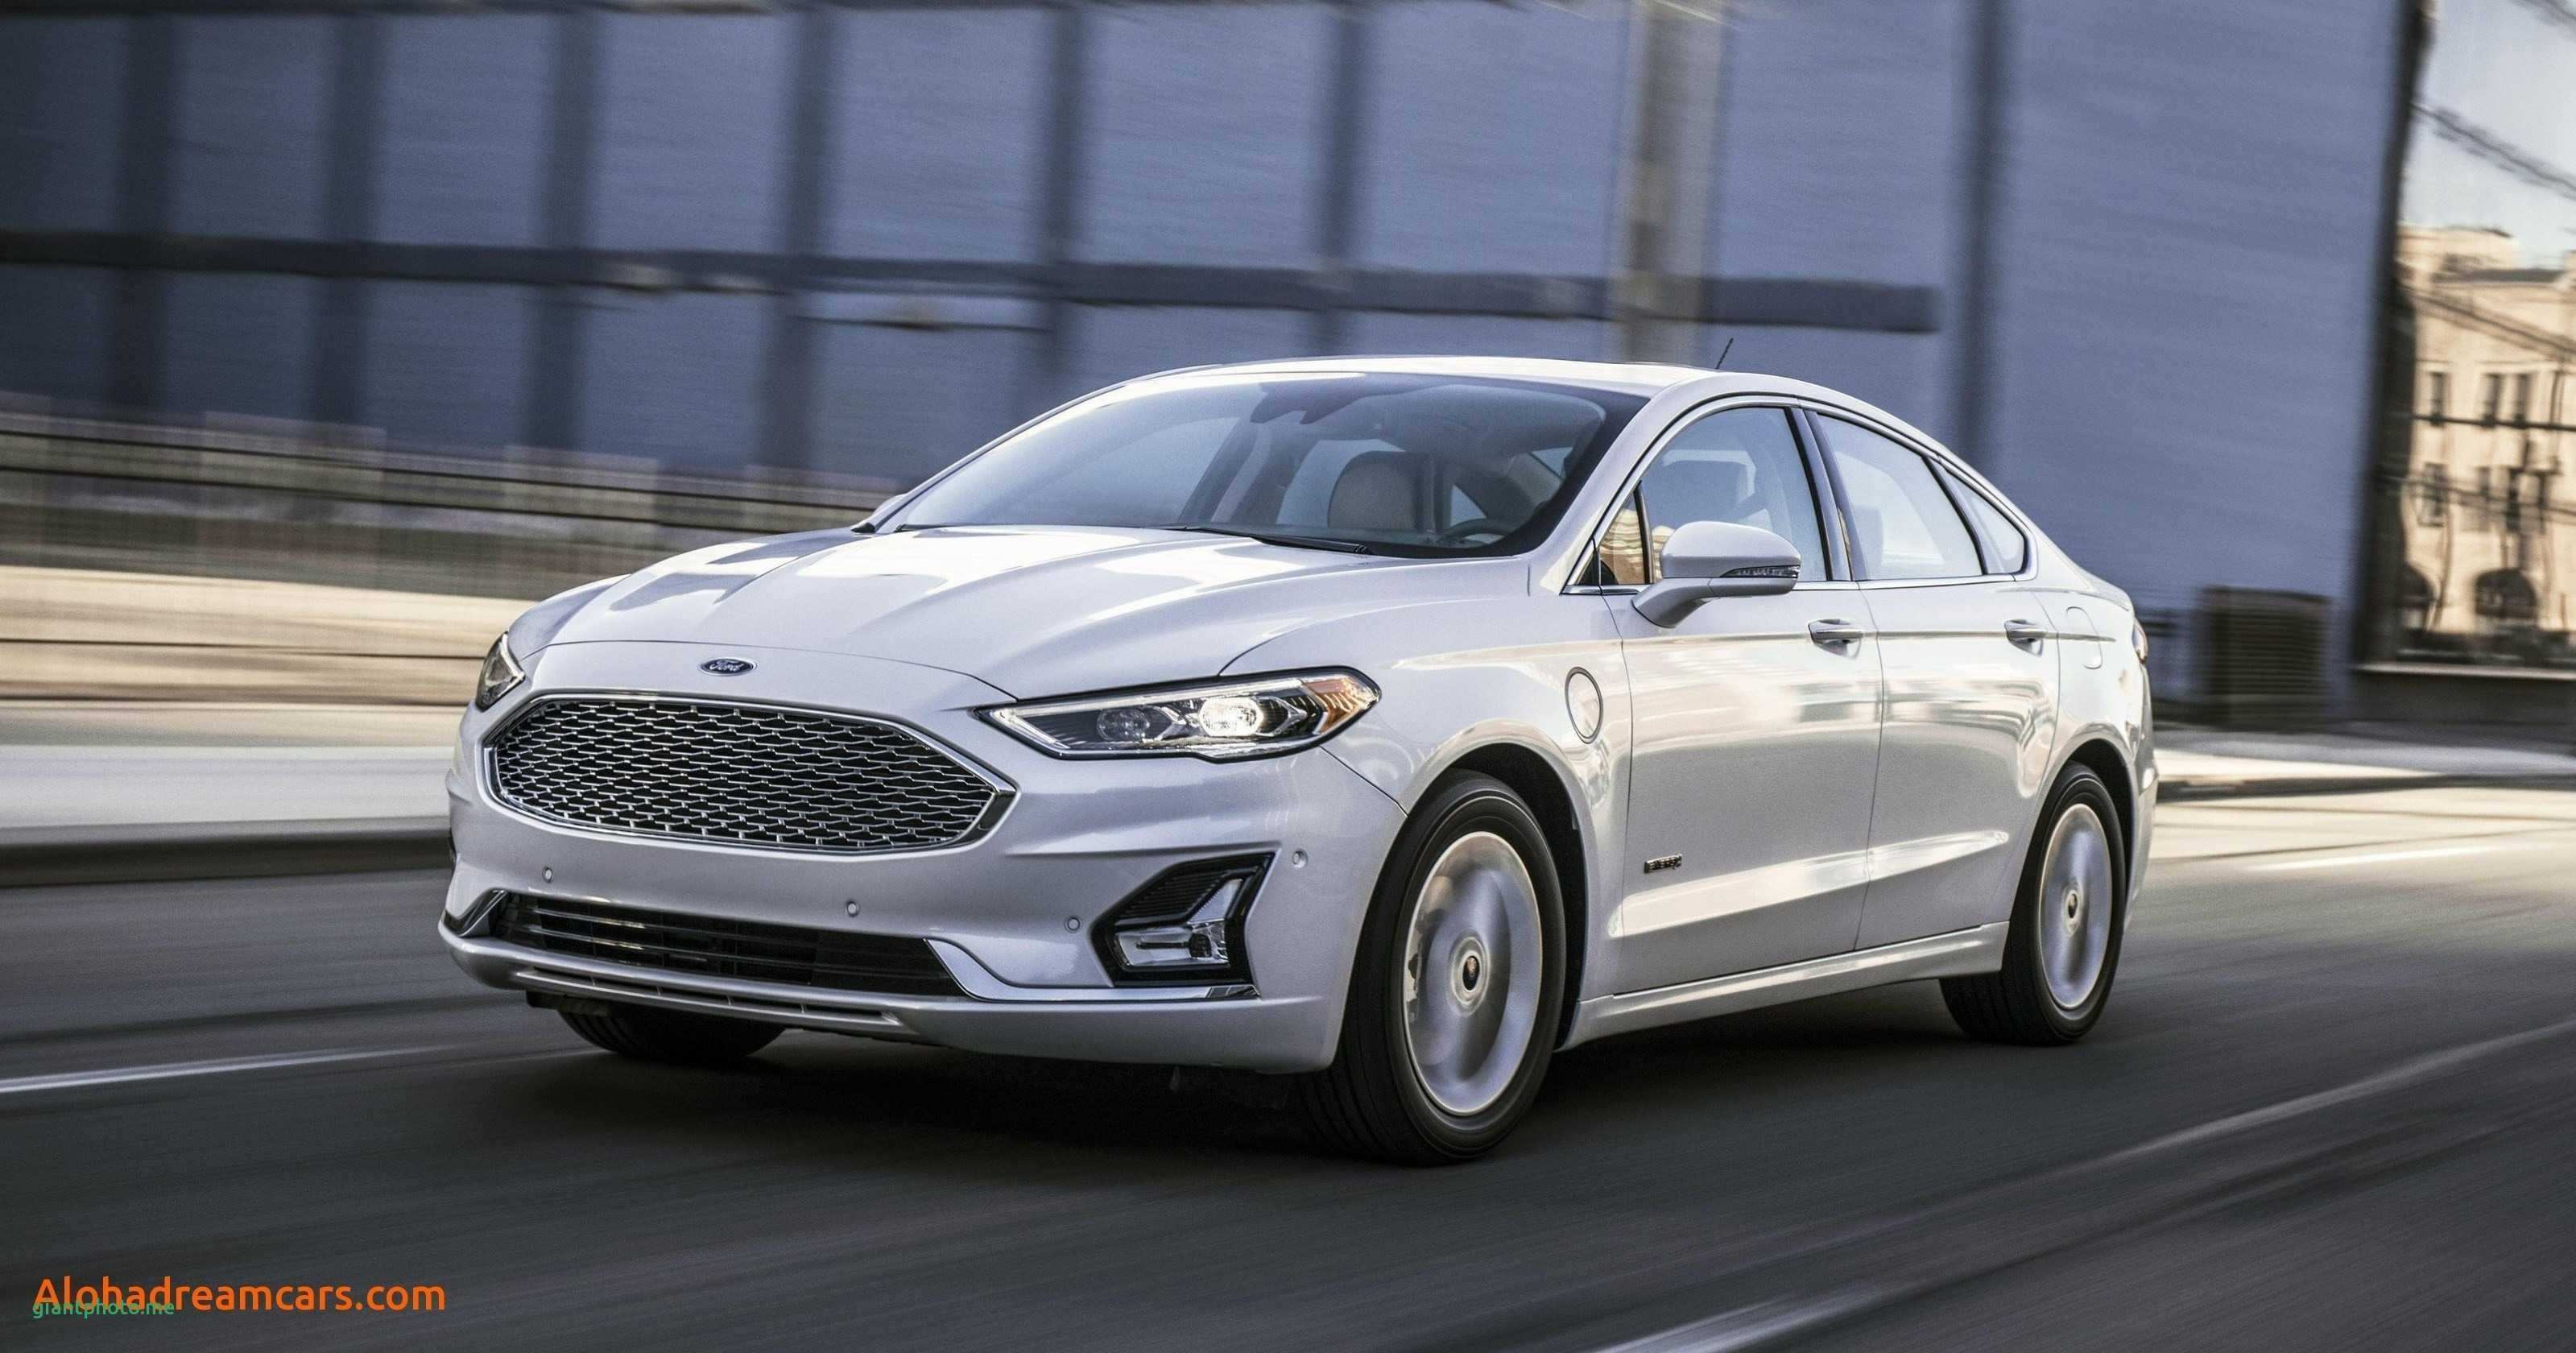 90 A 2020 The Spy Shots Ford Fusion New Review